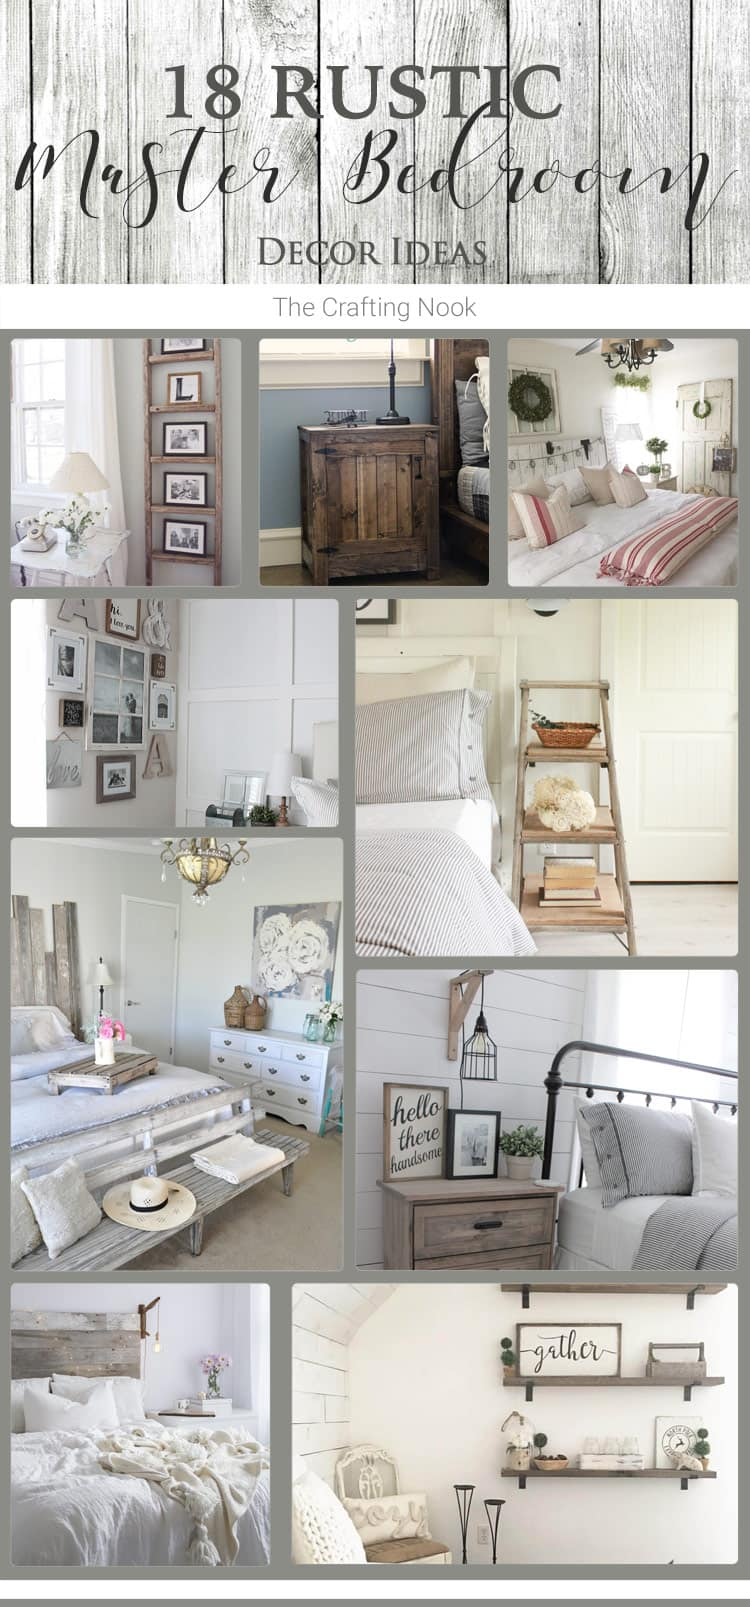 18 Rustic Master Bedroom Decor Ideas (that will invite you ...